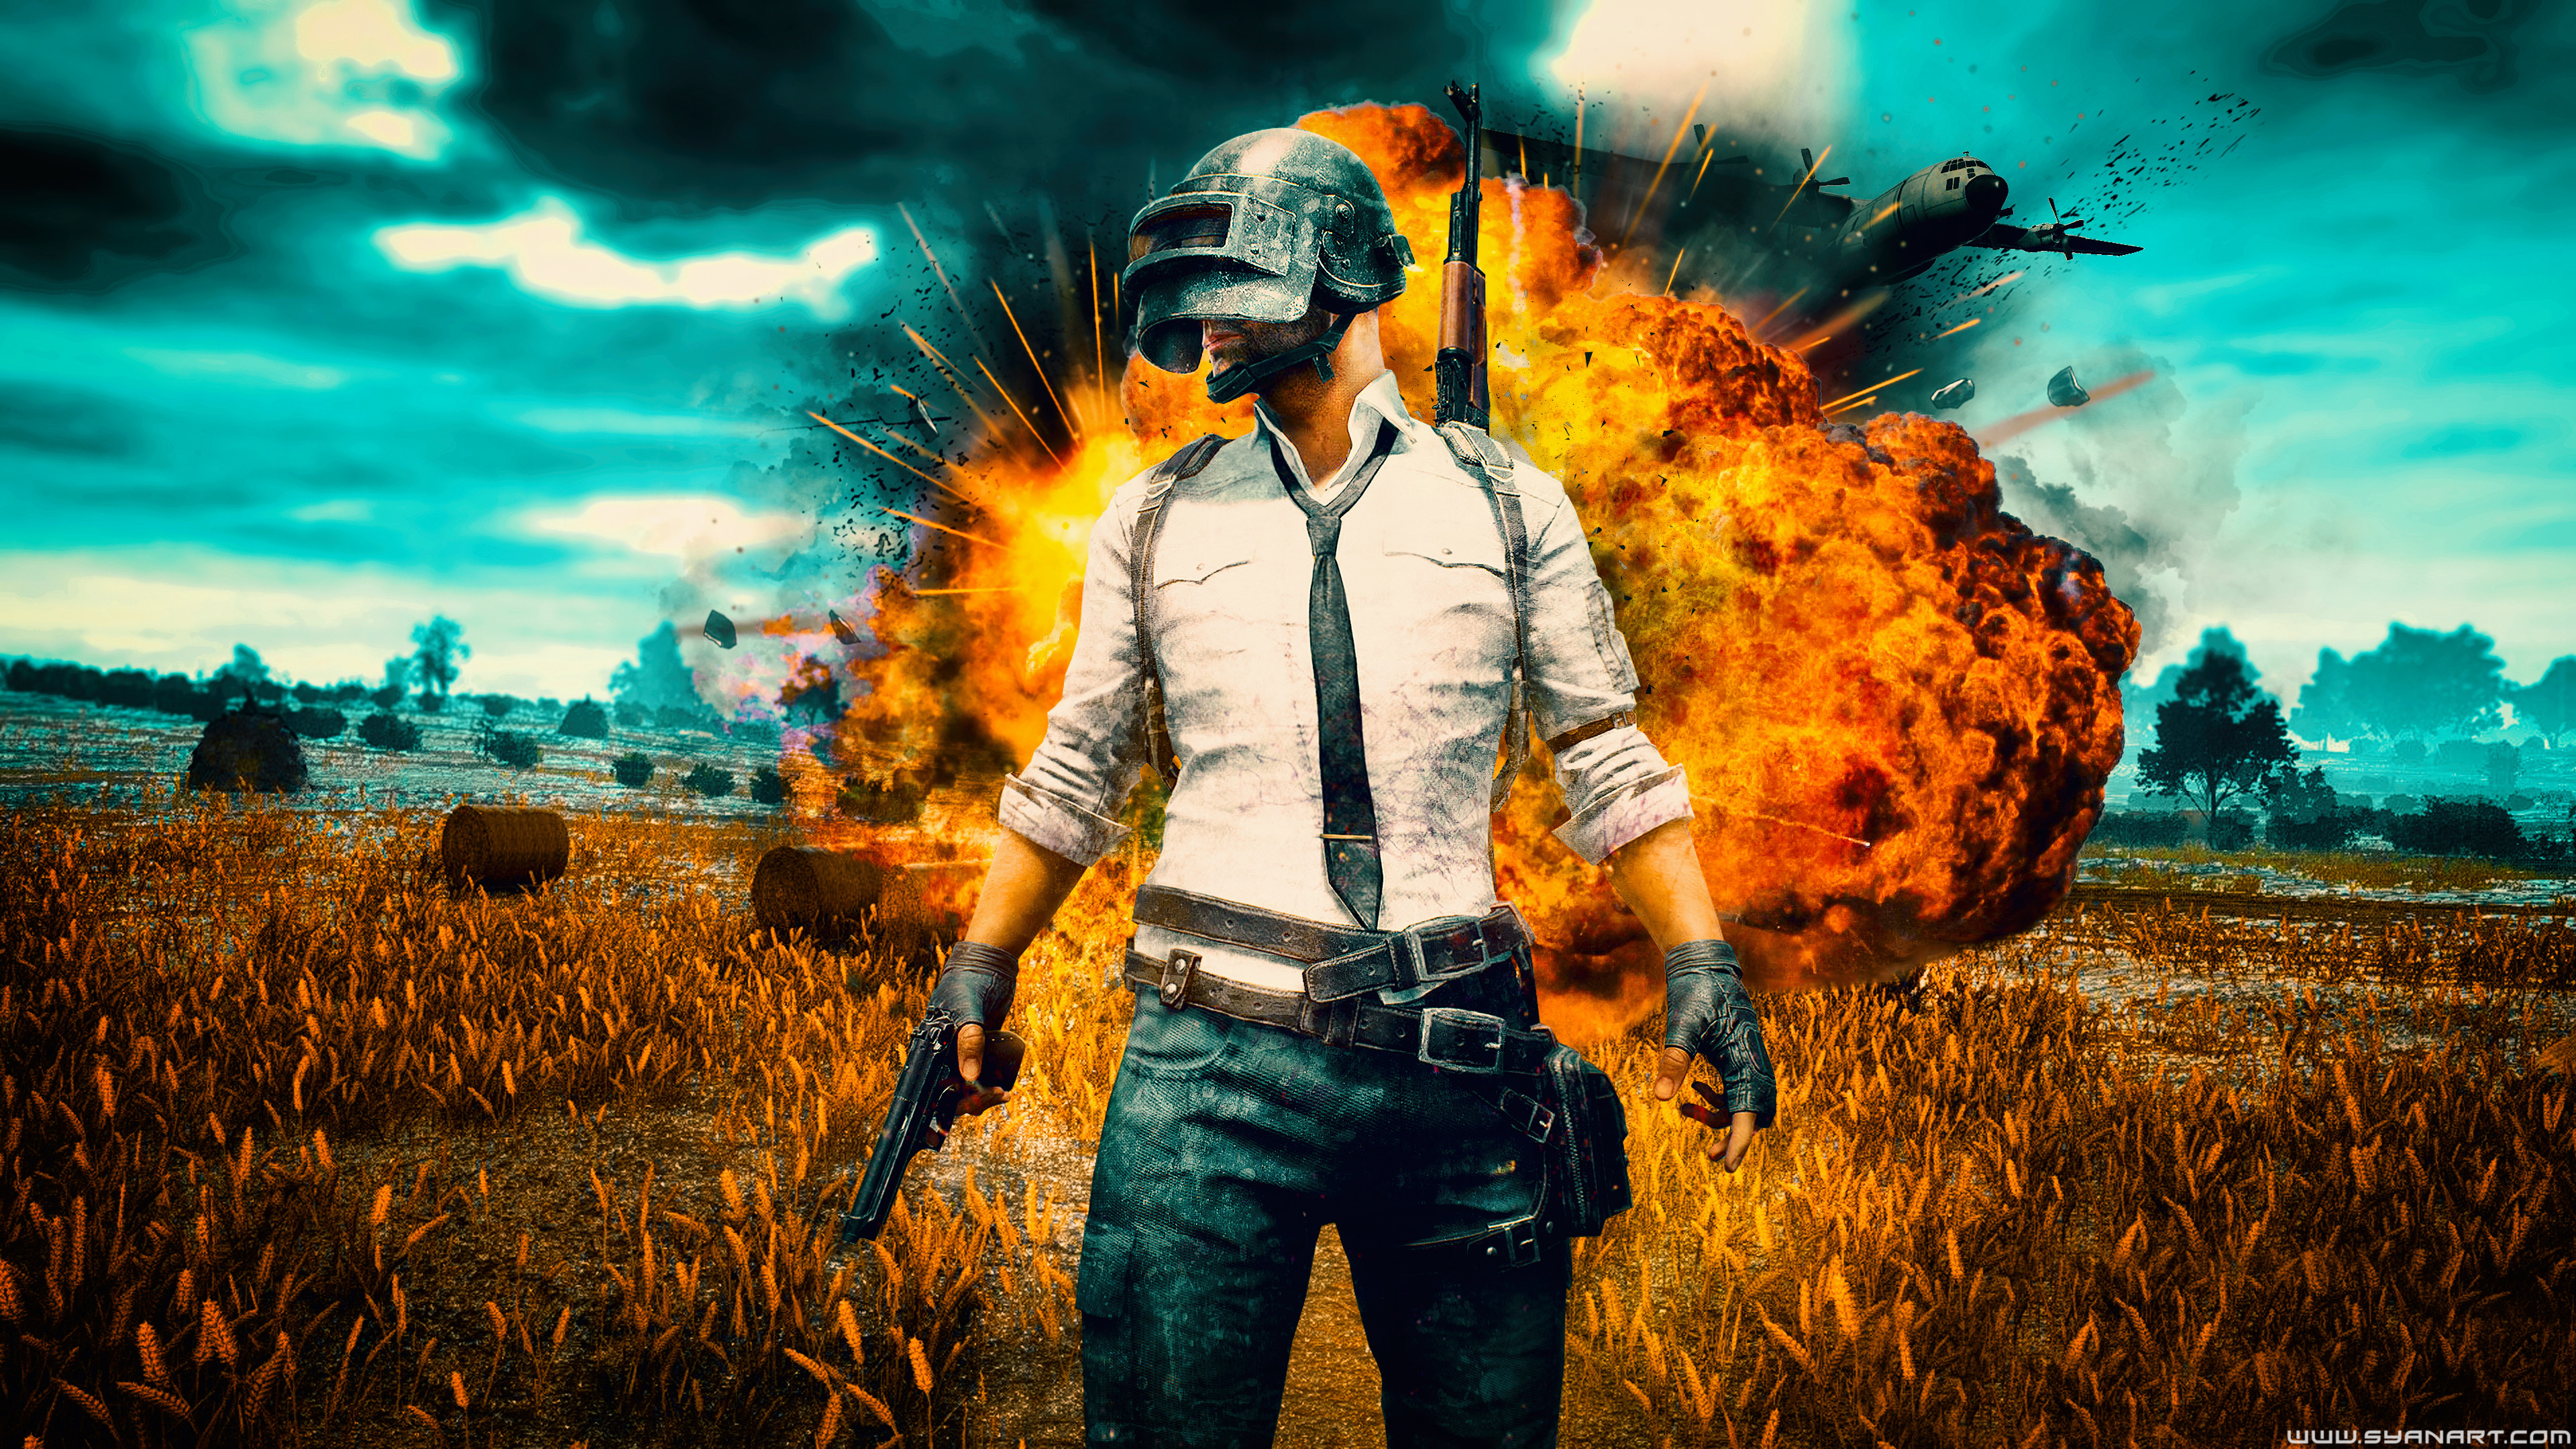 Pubg Hd Wallpaper: Pub Wallpaper (57+ Images